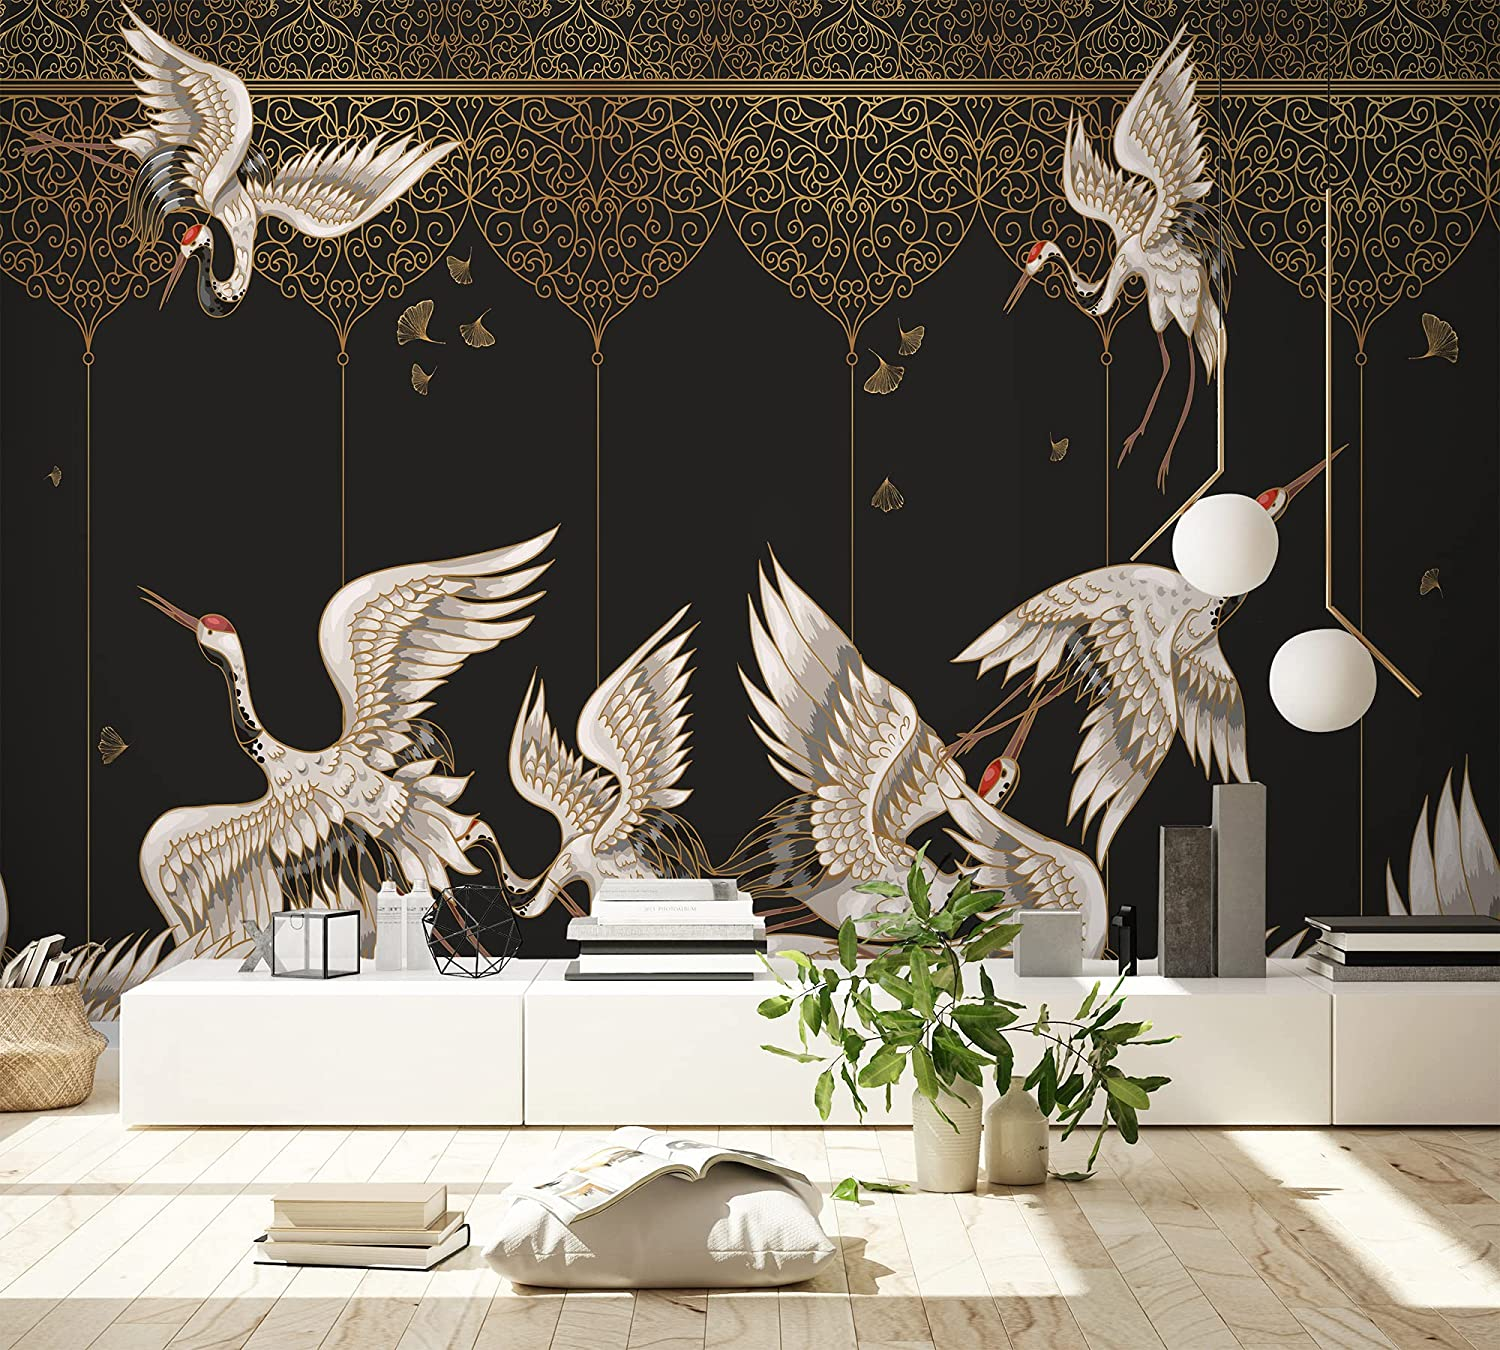 Amazon Com Murwall Art Wallpaper Asian Crane Birds Wall Mural Gold Style Ornament Wall Print Chinese Lux Oriental Bedroom Home Decor Handmade Products